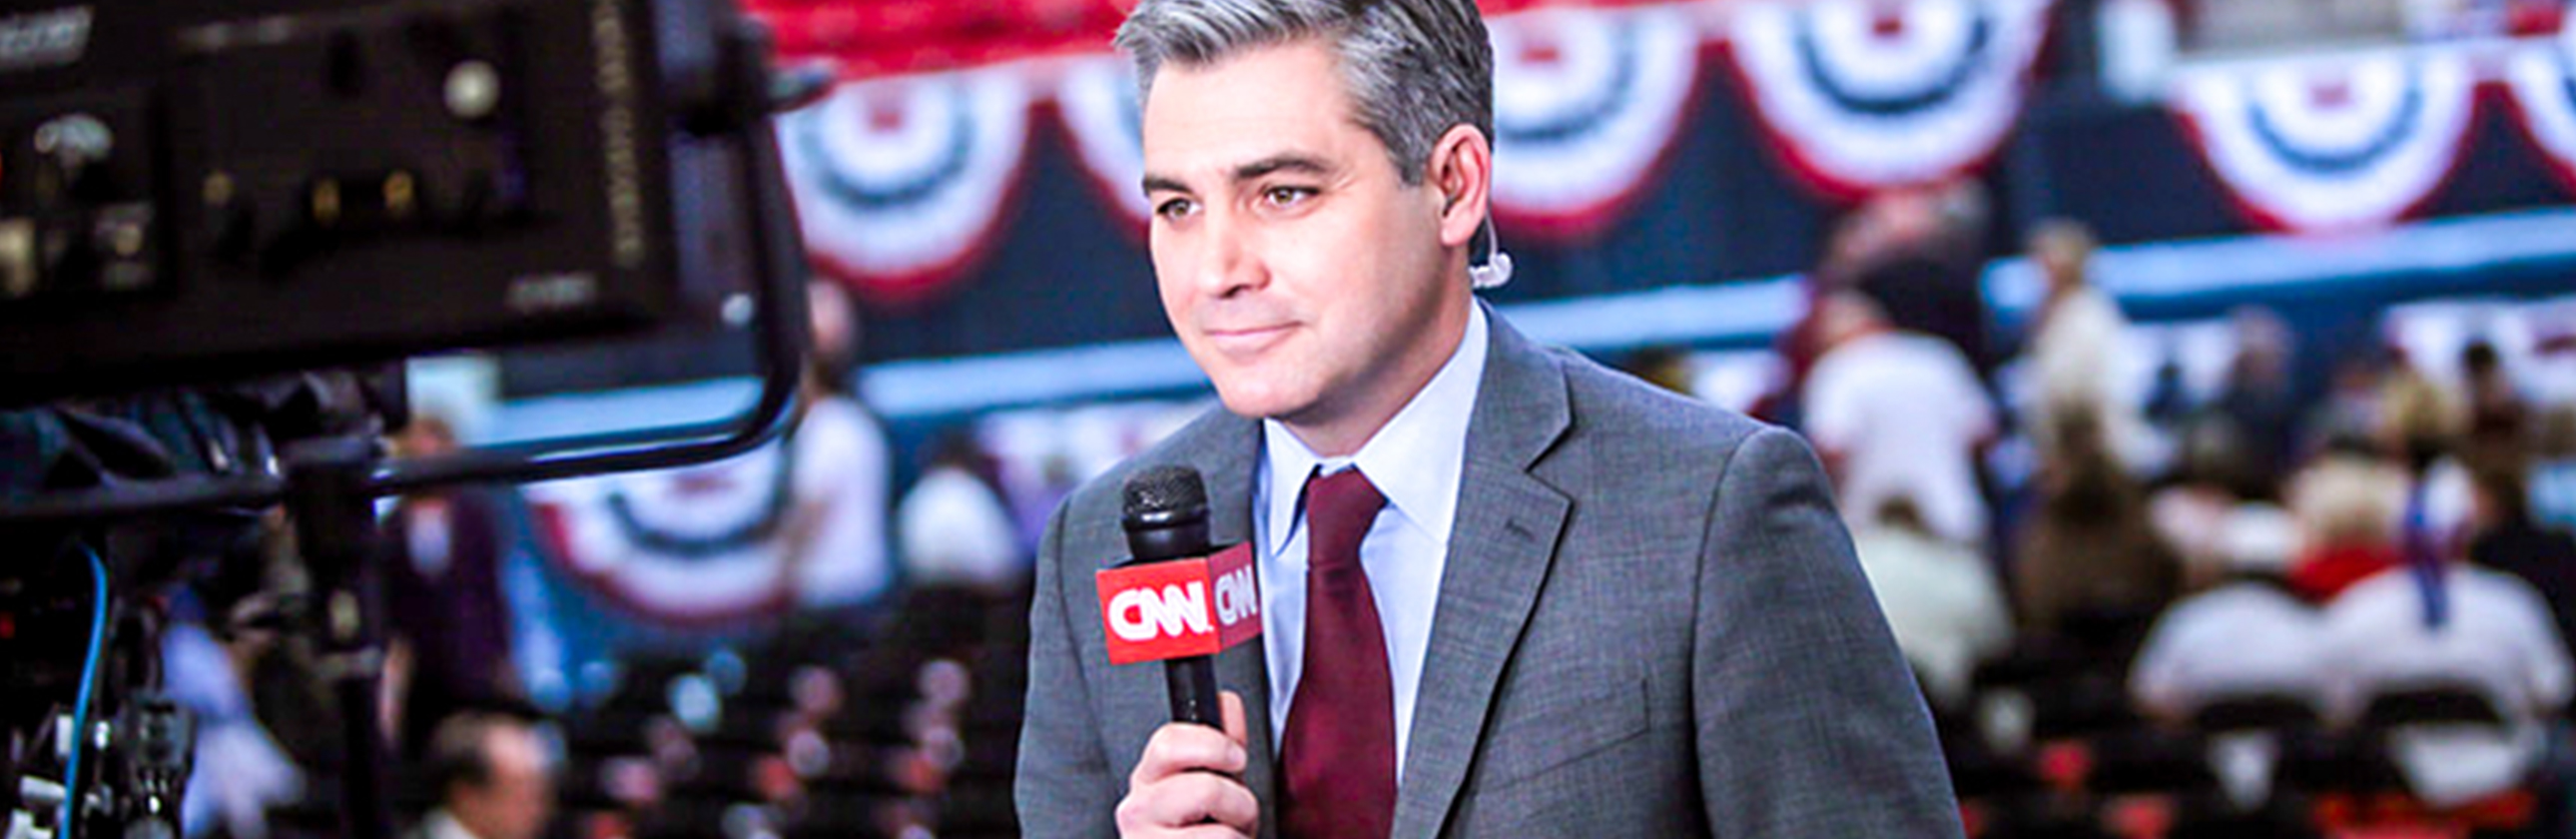 cnn journalist jim acosta - 1600×480